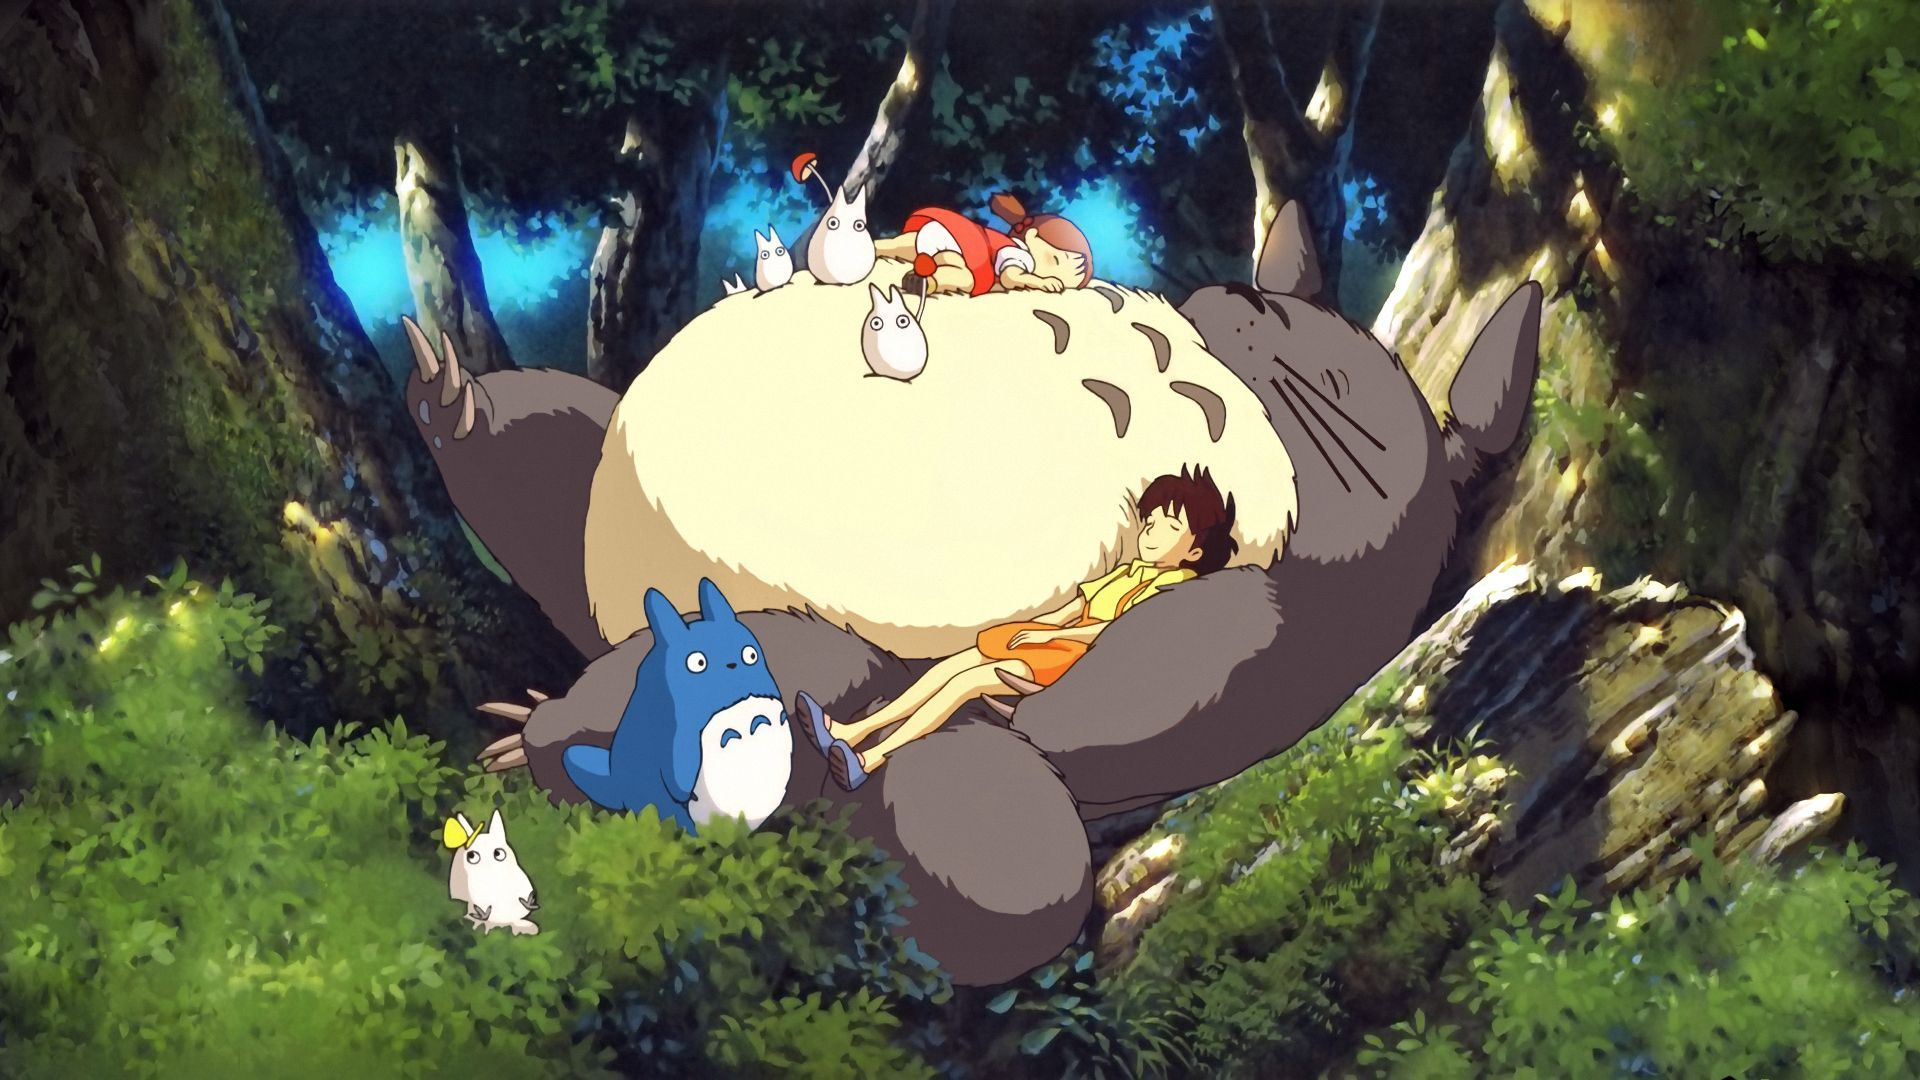 Free Download My Neighbor Totoro Wallpaper 1071418 1920x1080 For Your Desktop Mobile Tablet Explore 74 My Neighbor Totoro Wallpaper Cute Totoro Wallpaper May My Neighbor Totoro Wallpaper